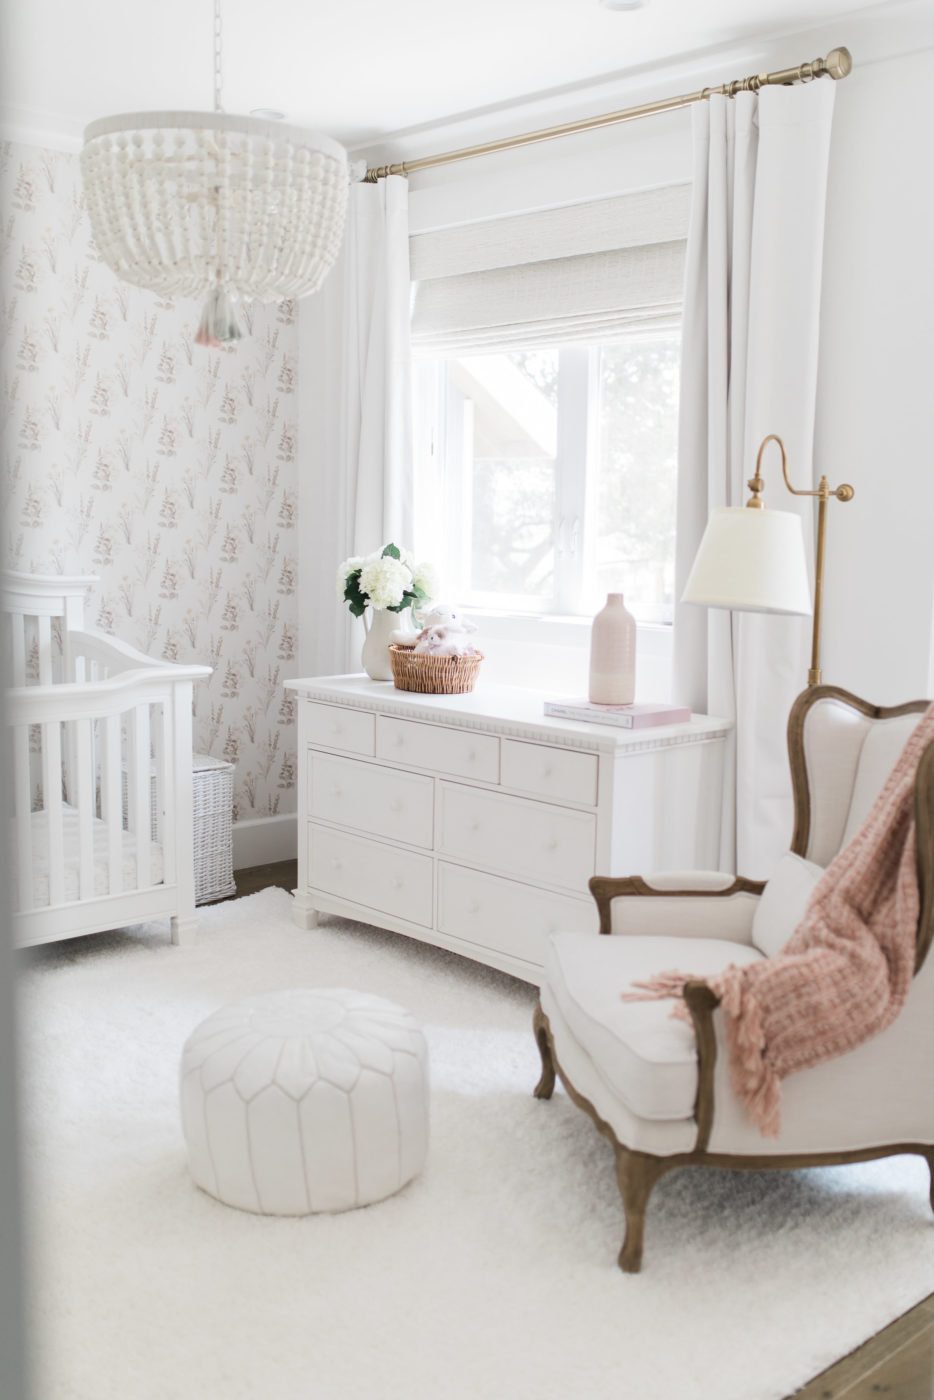 ALI LUVS HOME TOUR – Molly's Room – A Little Girls Room